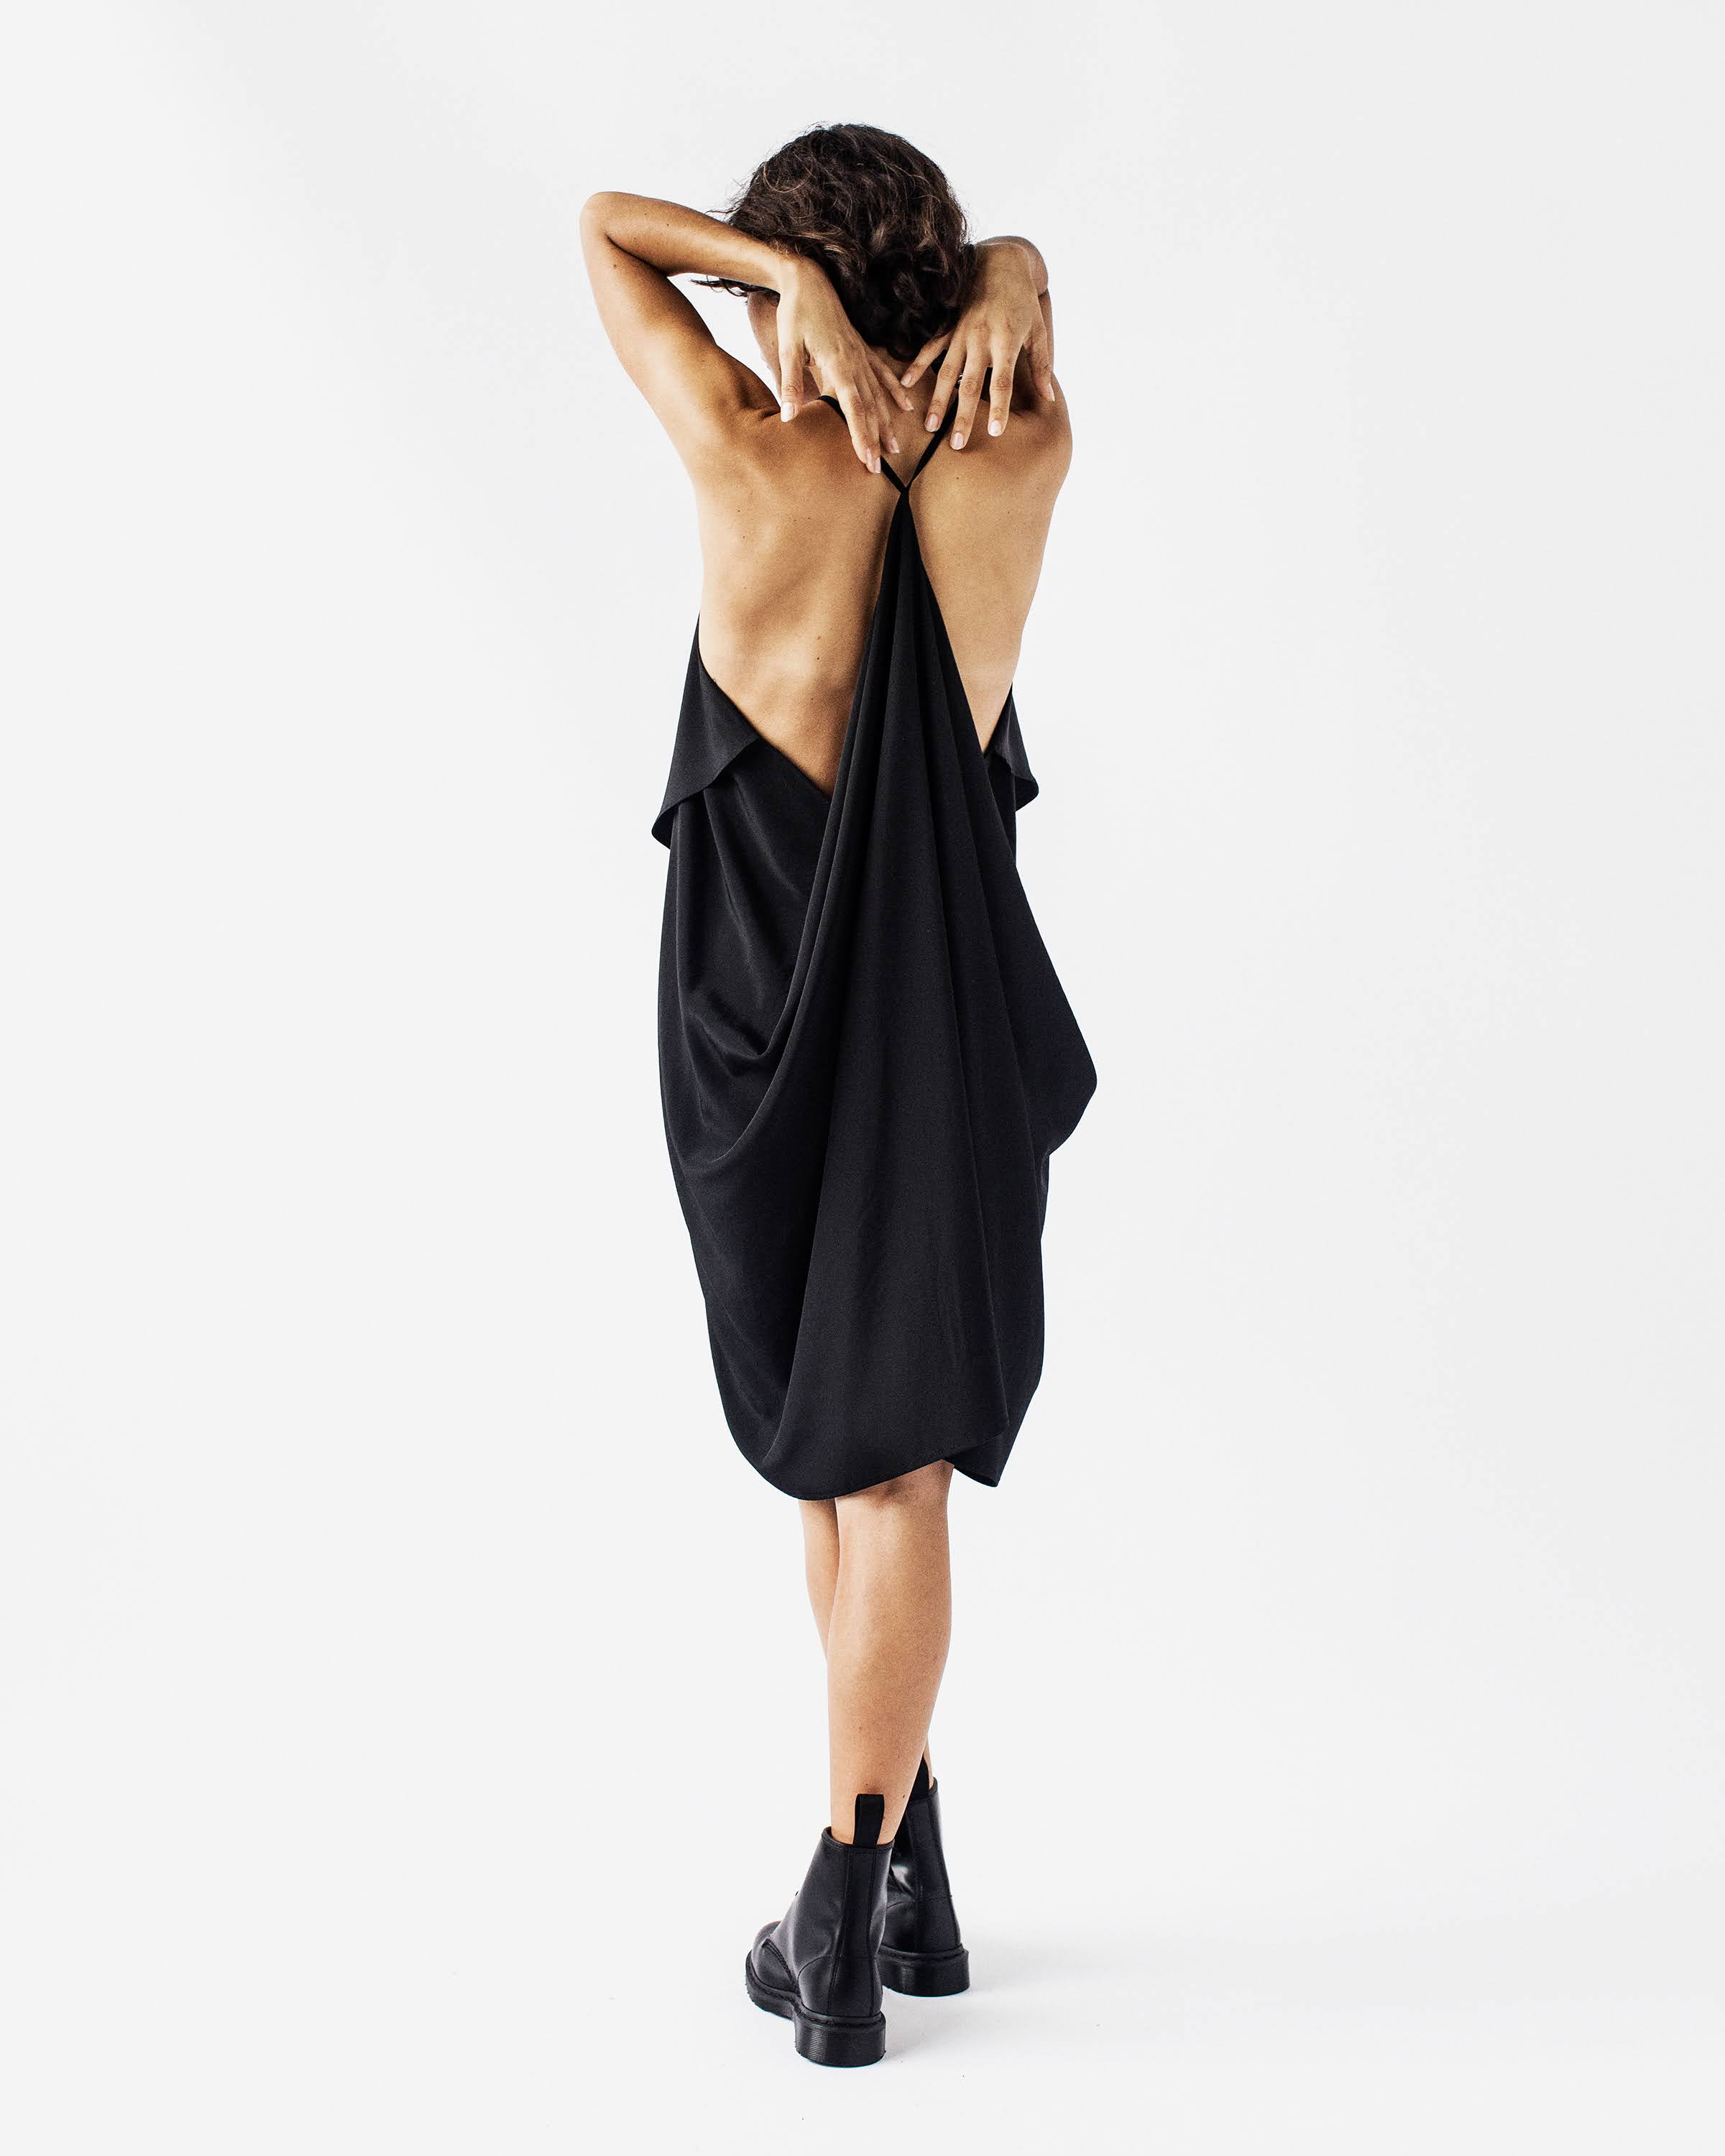 LINNY Silk Crepe Dress.